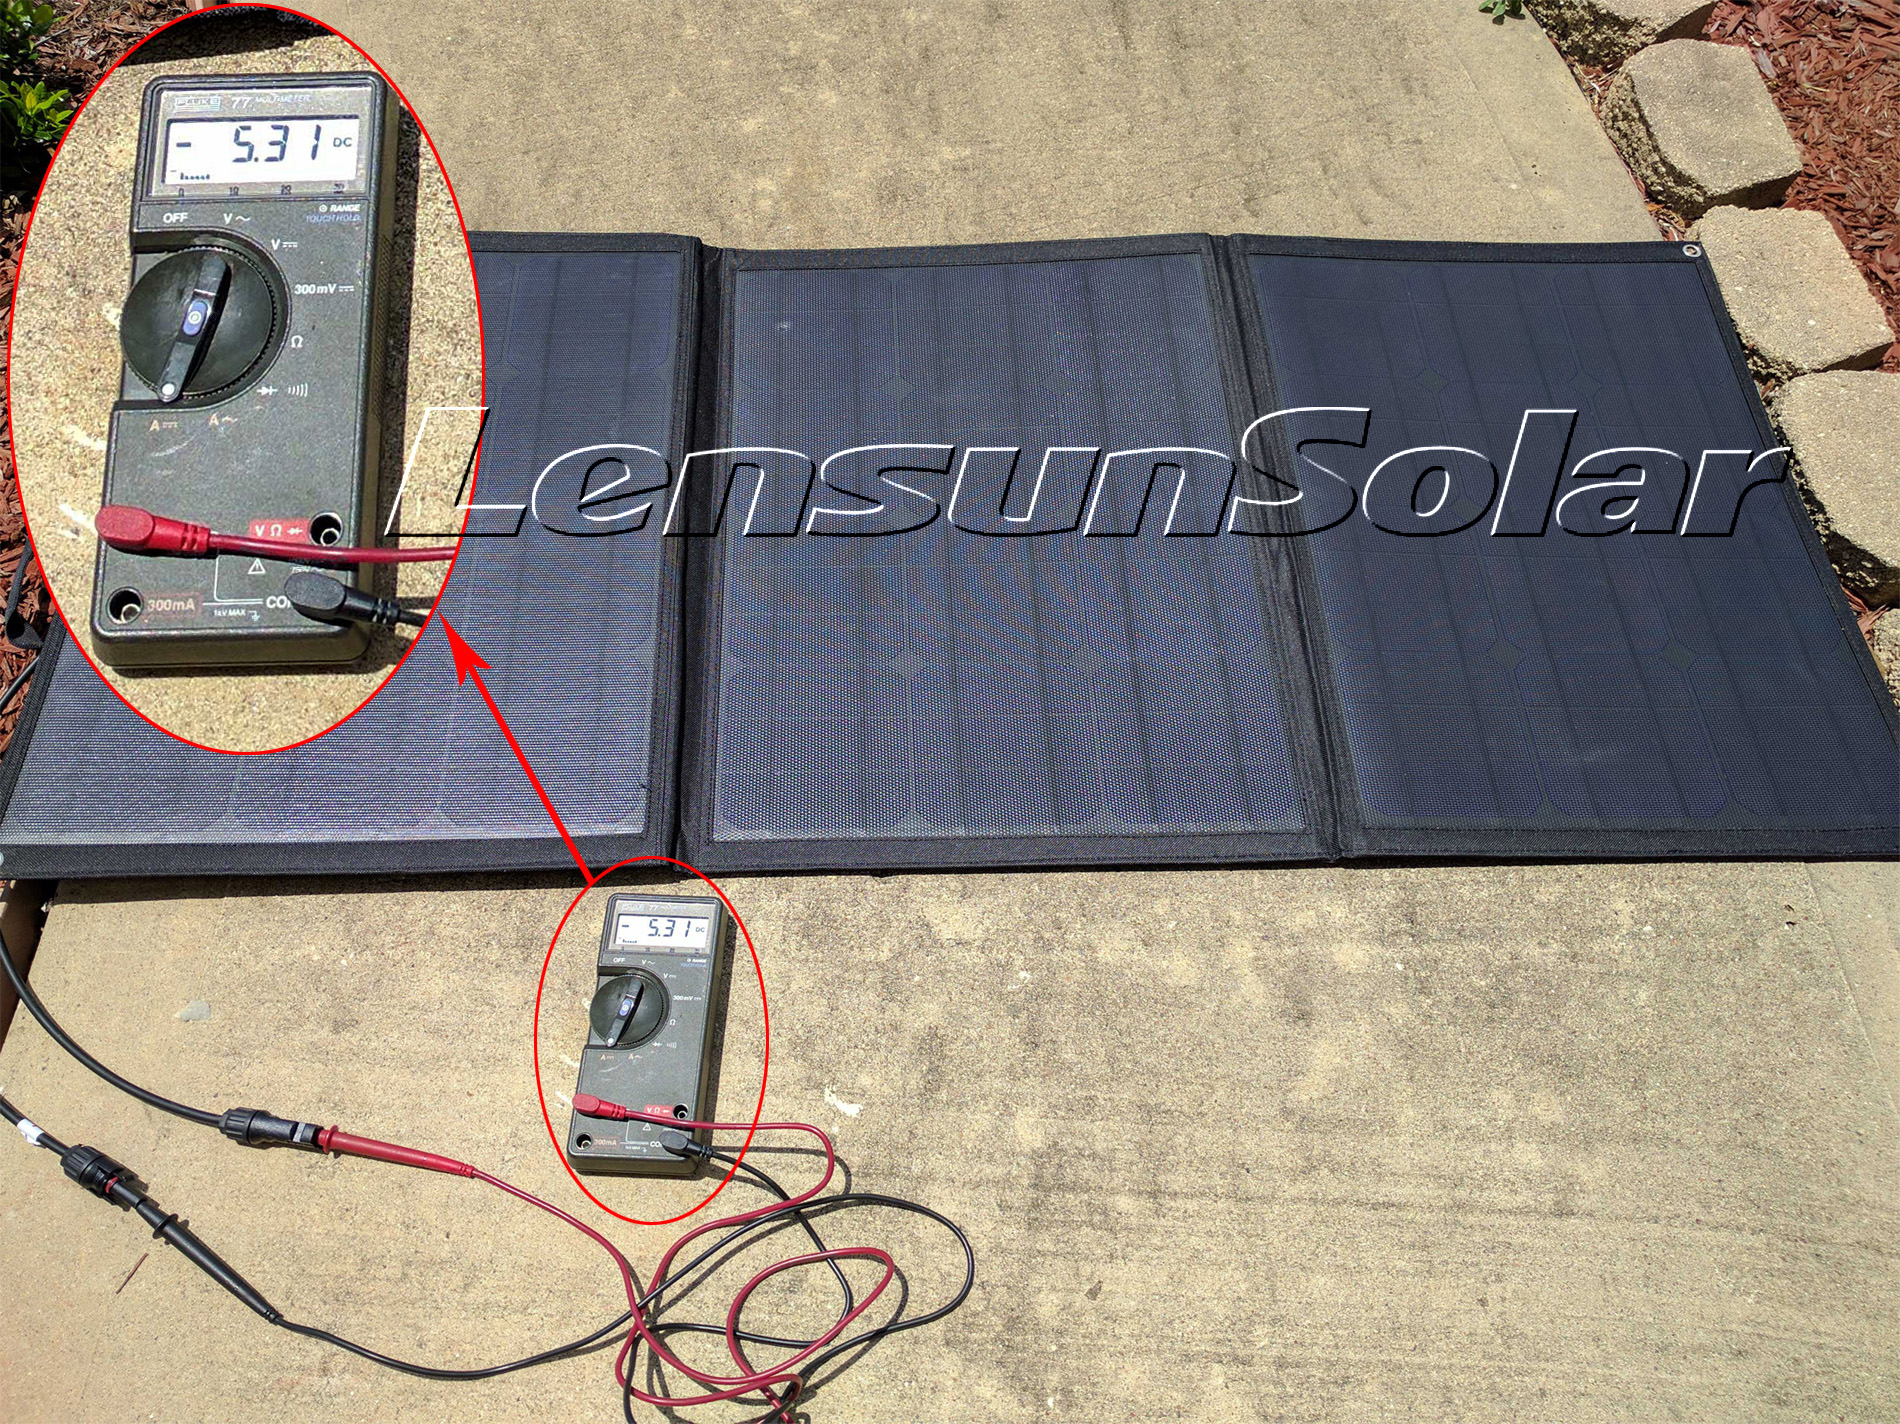 How To Use Multimeter Measure Volts And Amps Of Solar Panel Solarpanelpoweredbatterychargercircuitdiagram Lensun Portable 100w Dc Testing Via